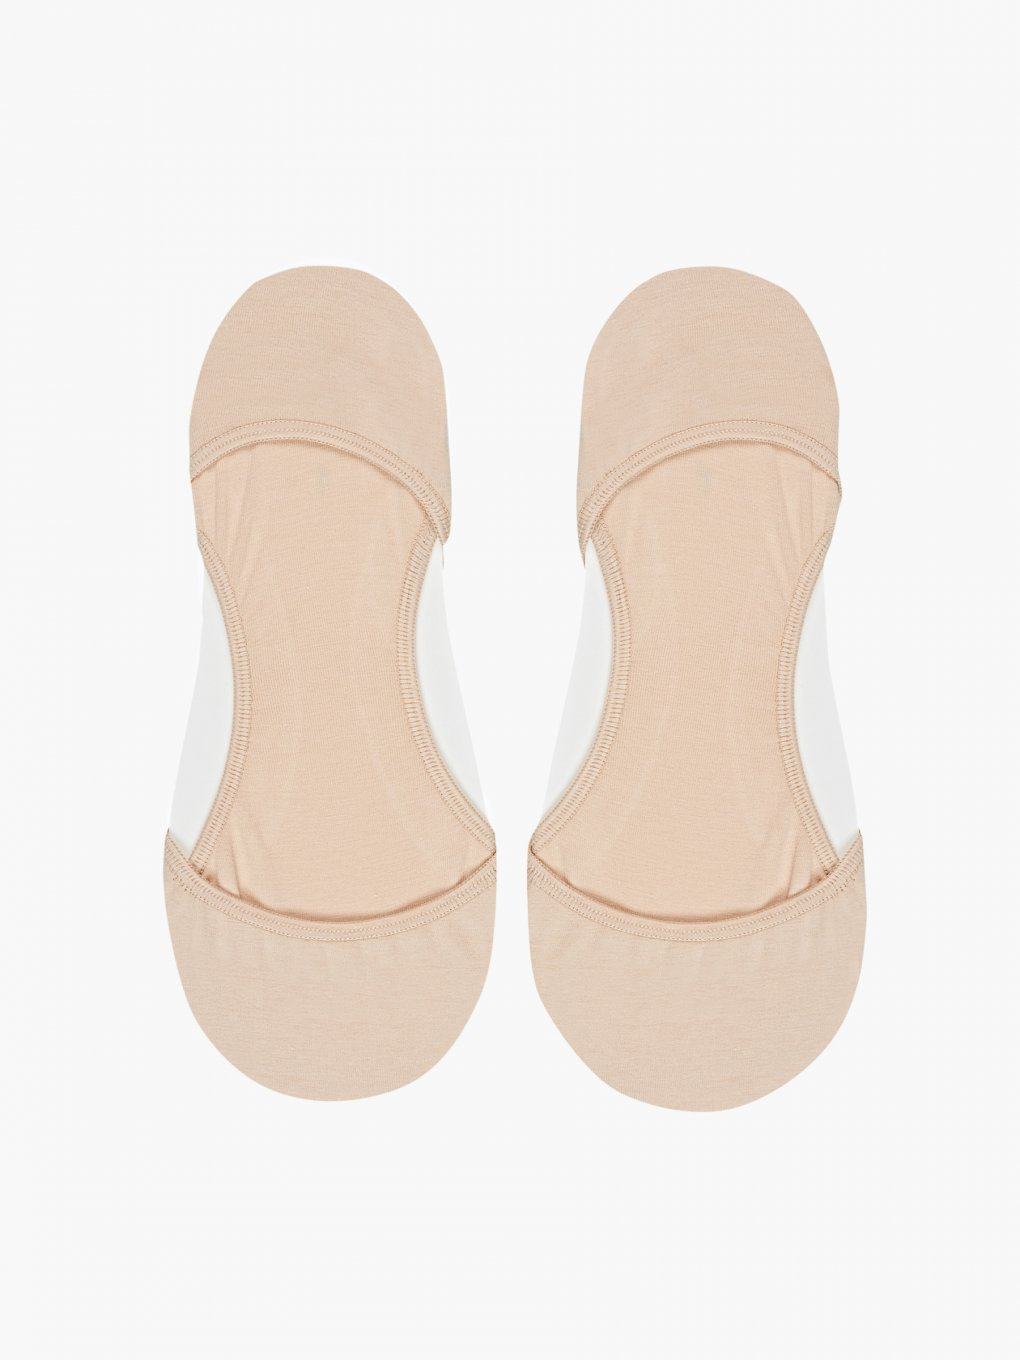 2-PACK BASIC FOOTIES WITH SILICONE HEEL